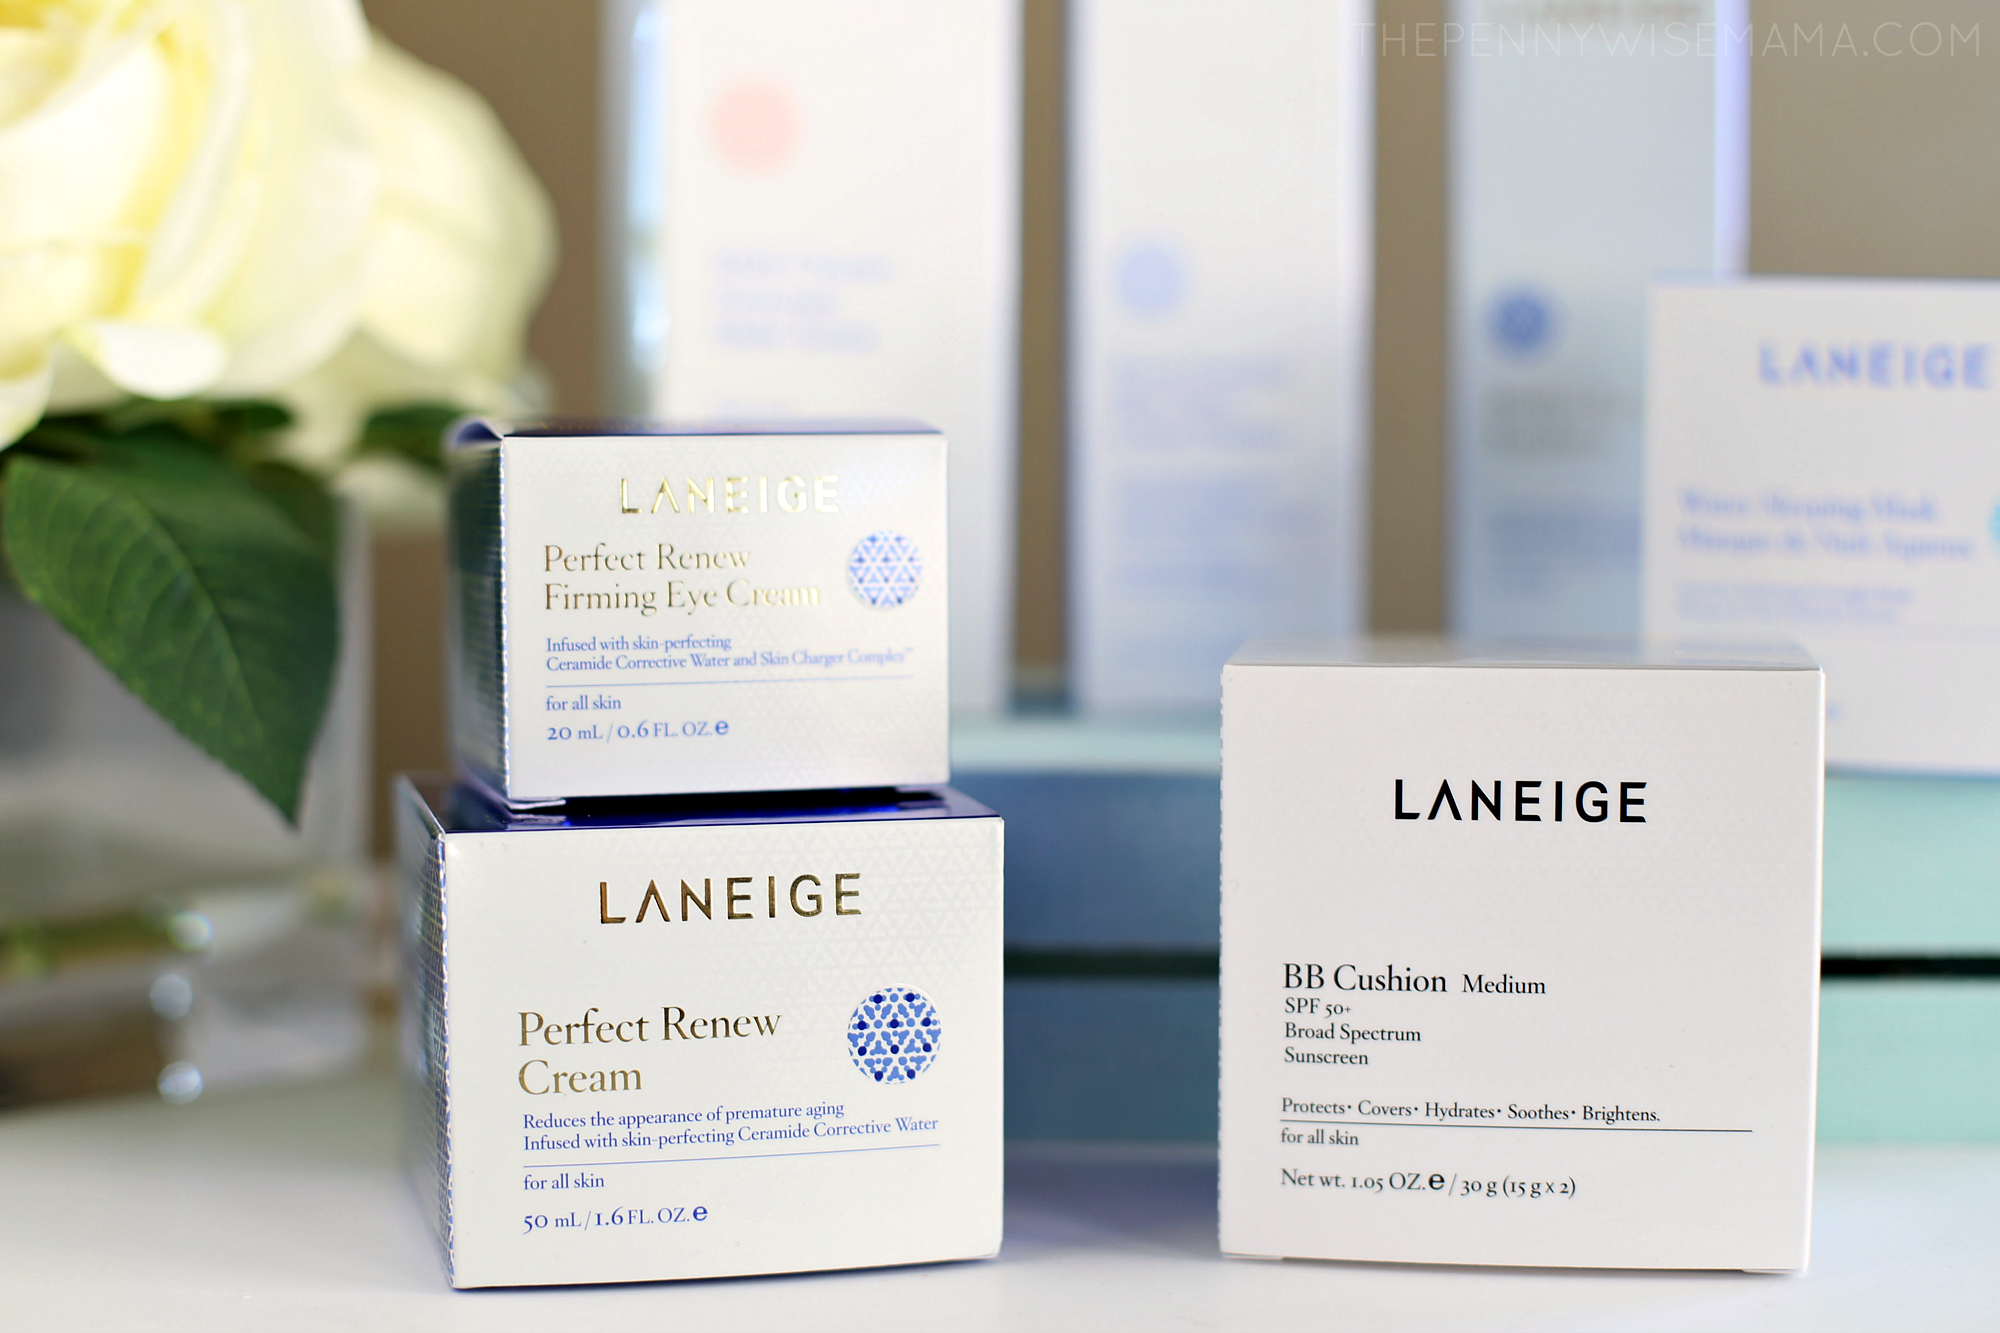 LANEIGE Skincare Line Review